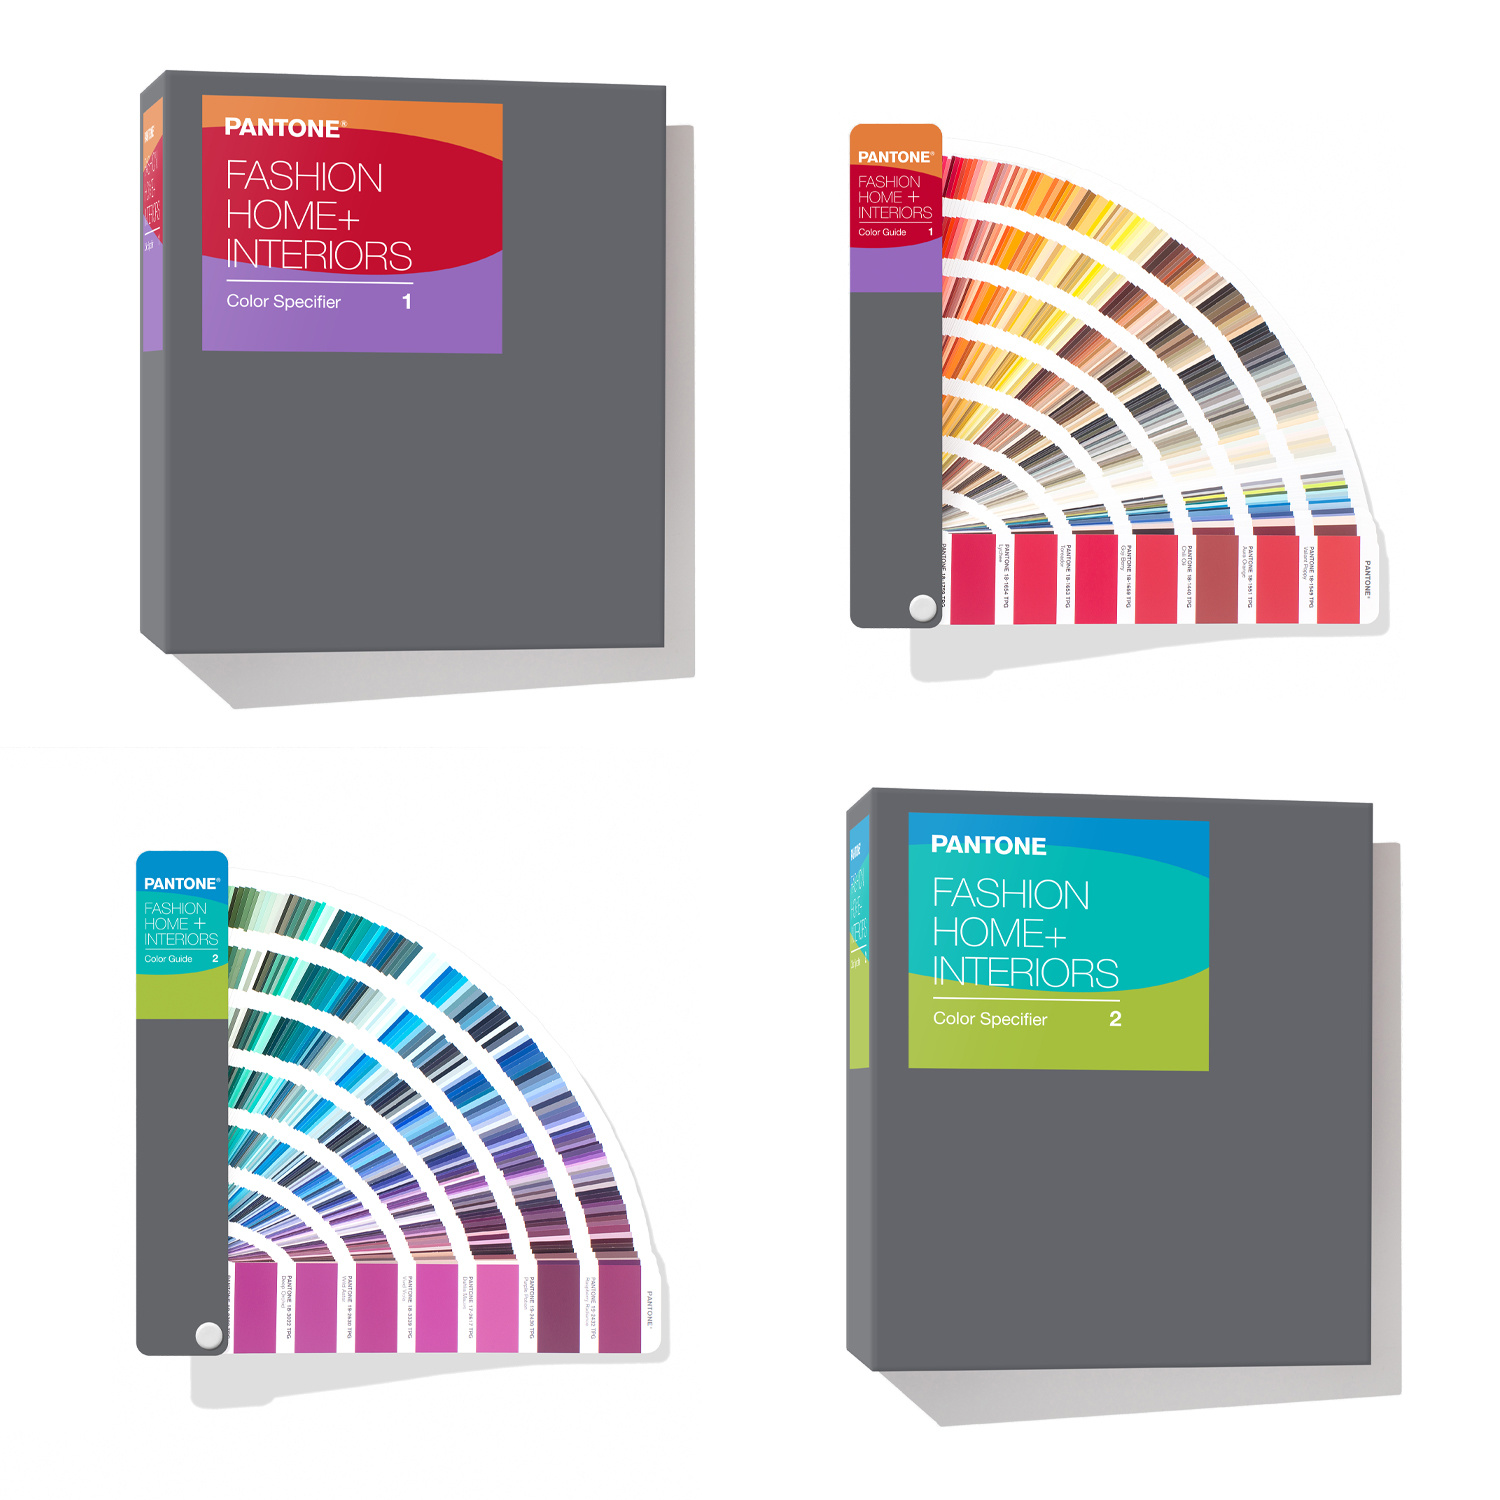 PANTONE PANTONE FHI Color Specifier & Color Guide Set